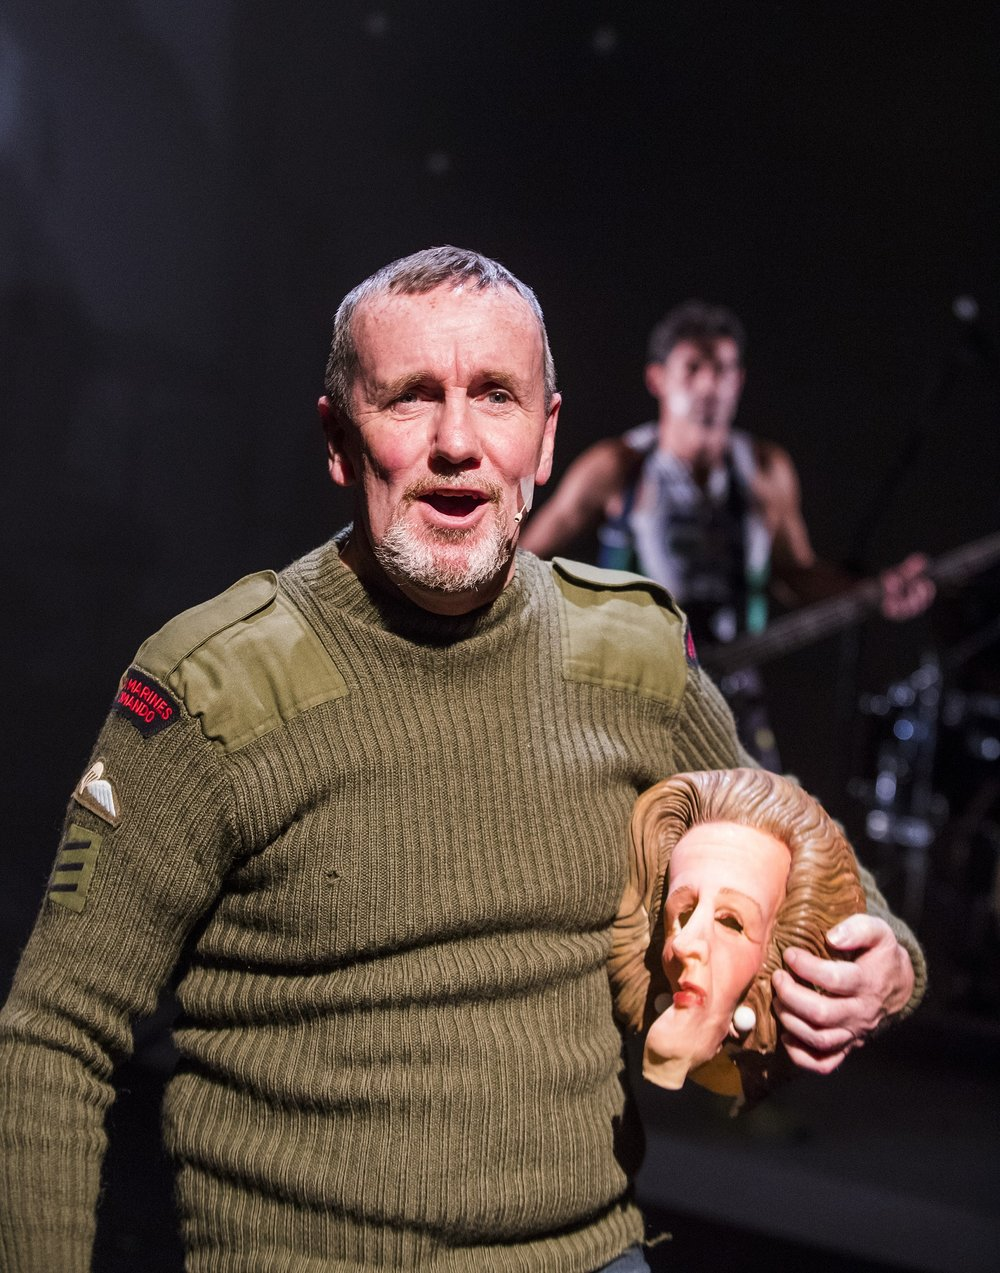 Minefield pic 8 - Lou Armour (photo by Tristram Kenton).jpg